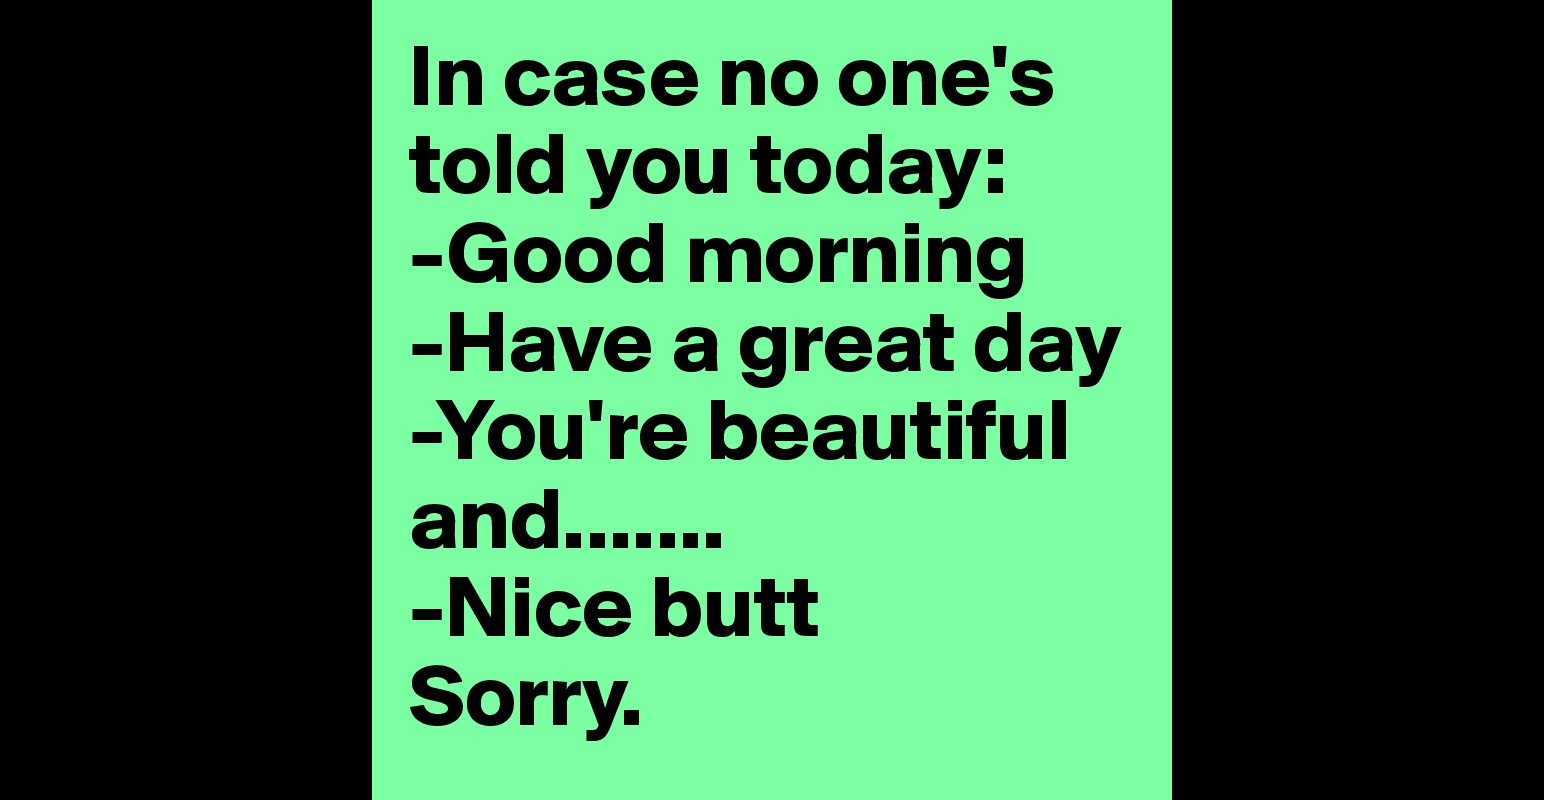 In Case No One Told You Today You Re Beautiful You Re: In Case No One's Told You Today: -Good Morning -Have A